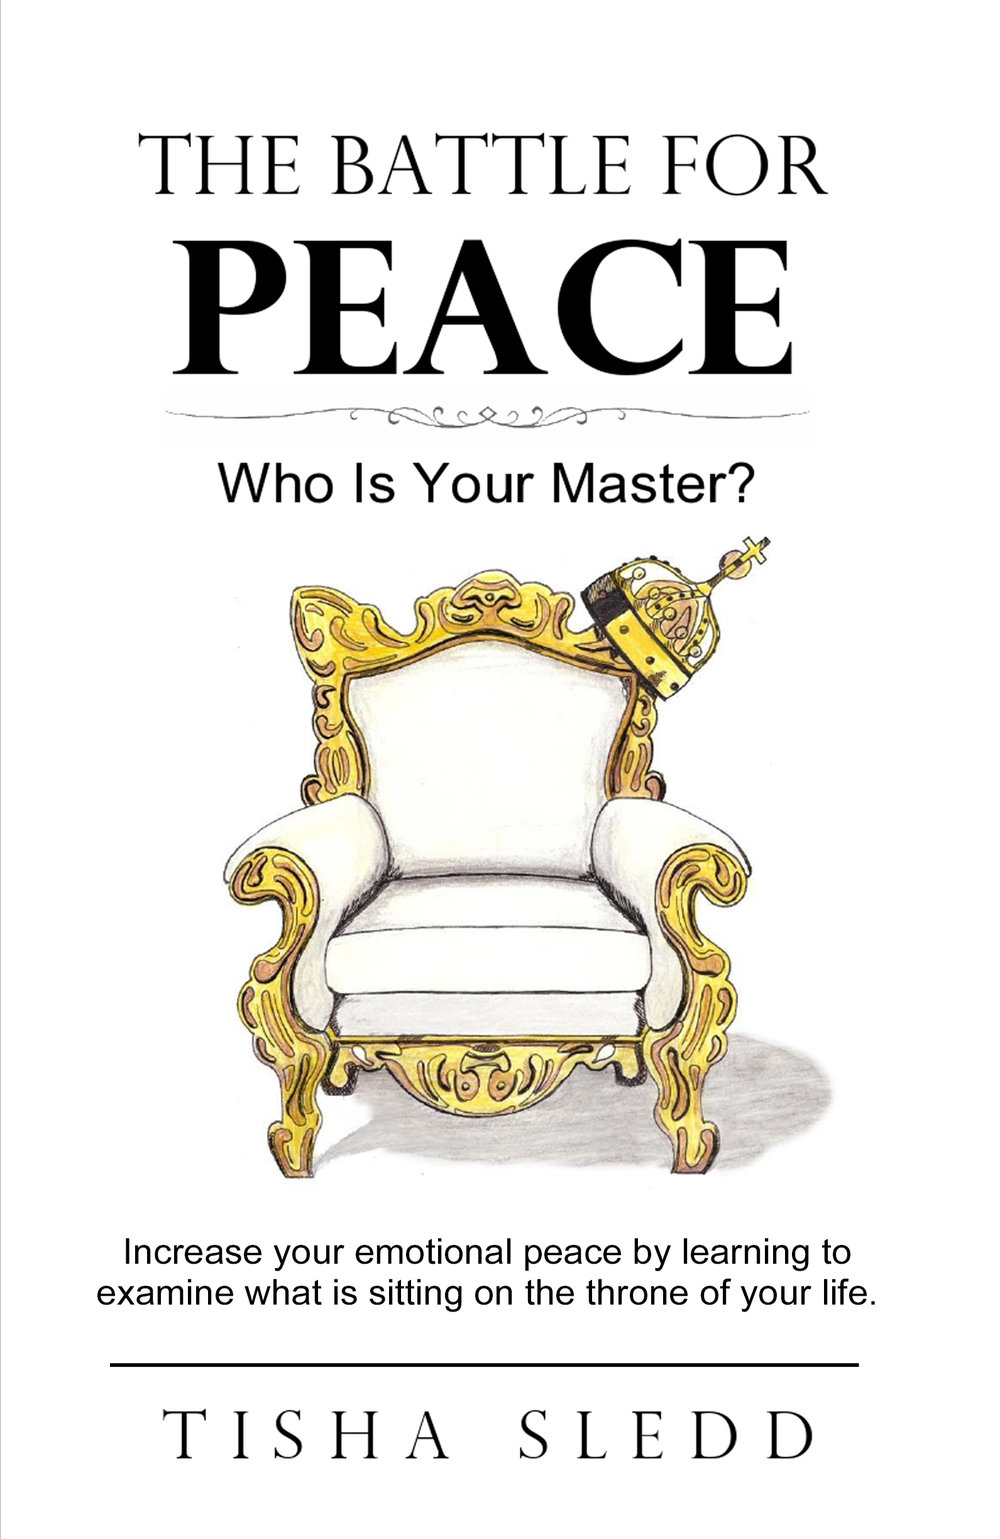 The Battle for Peace - byTisha SleddIncrease your emotional peace by learning to examine what is sitting on the throne of your life. My book